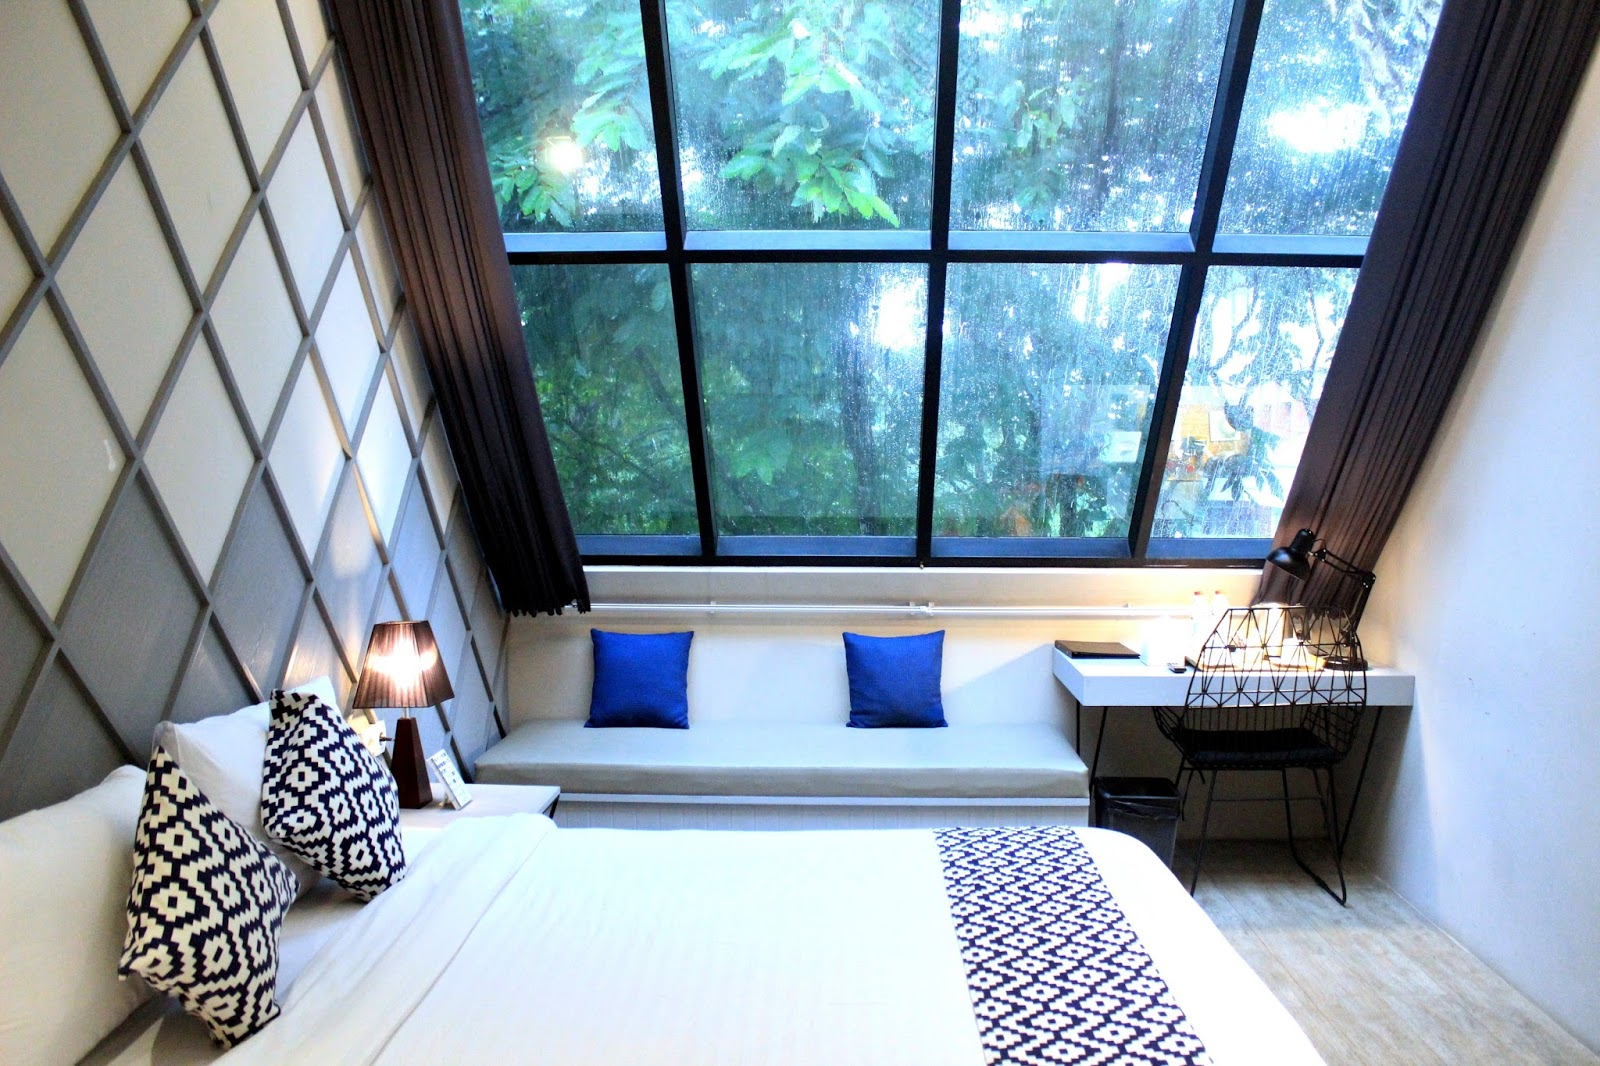 HOTEL REVIEW BEEHIVE BOUTIQUE HOTEL BANDUNG